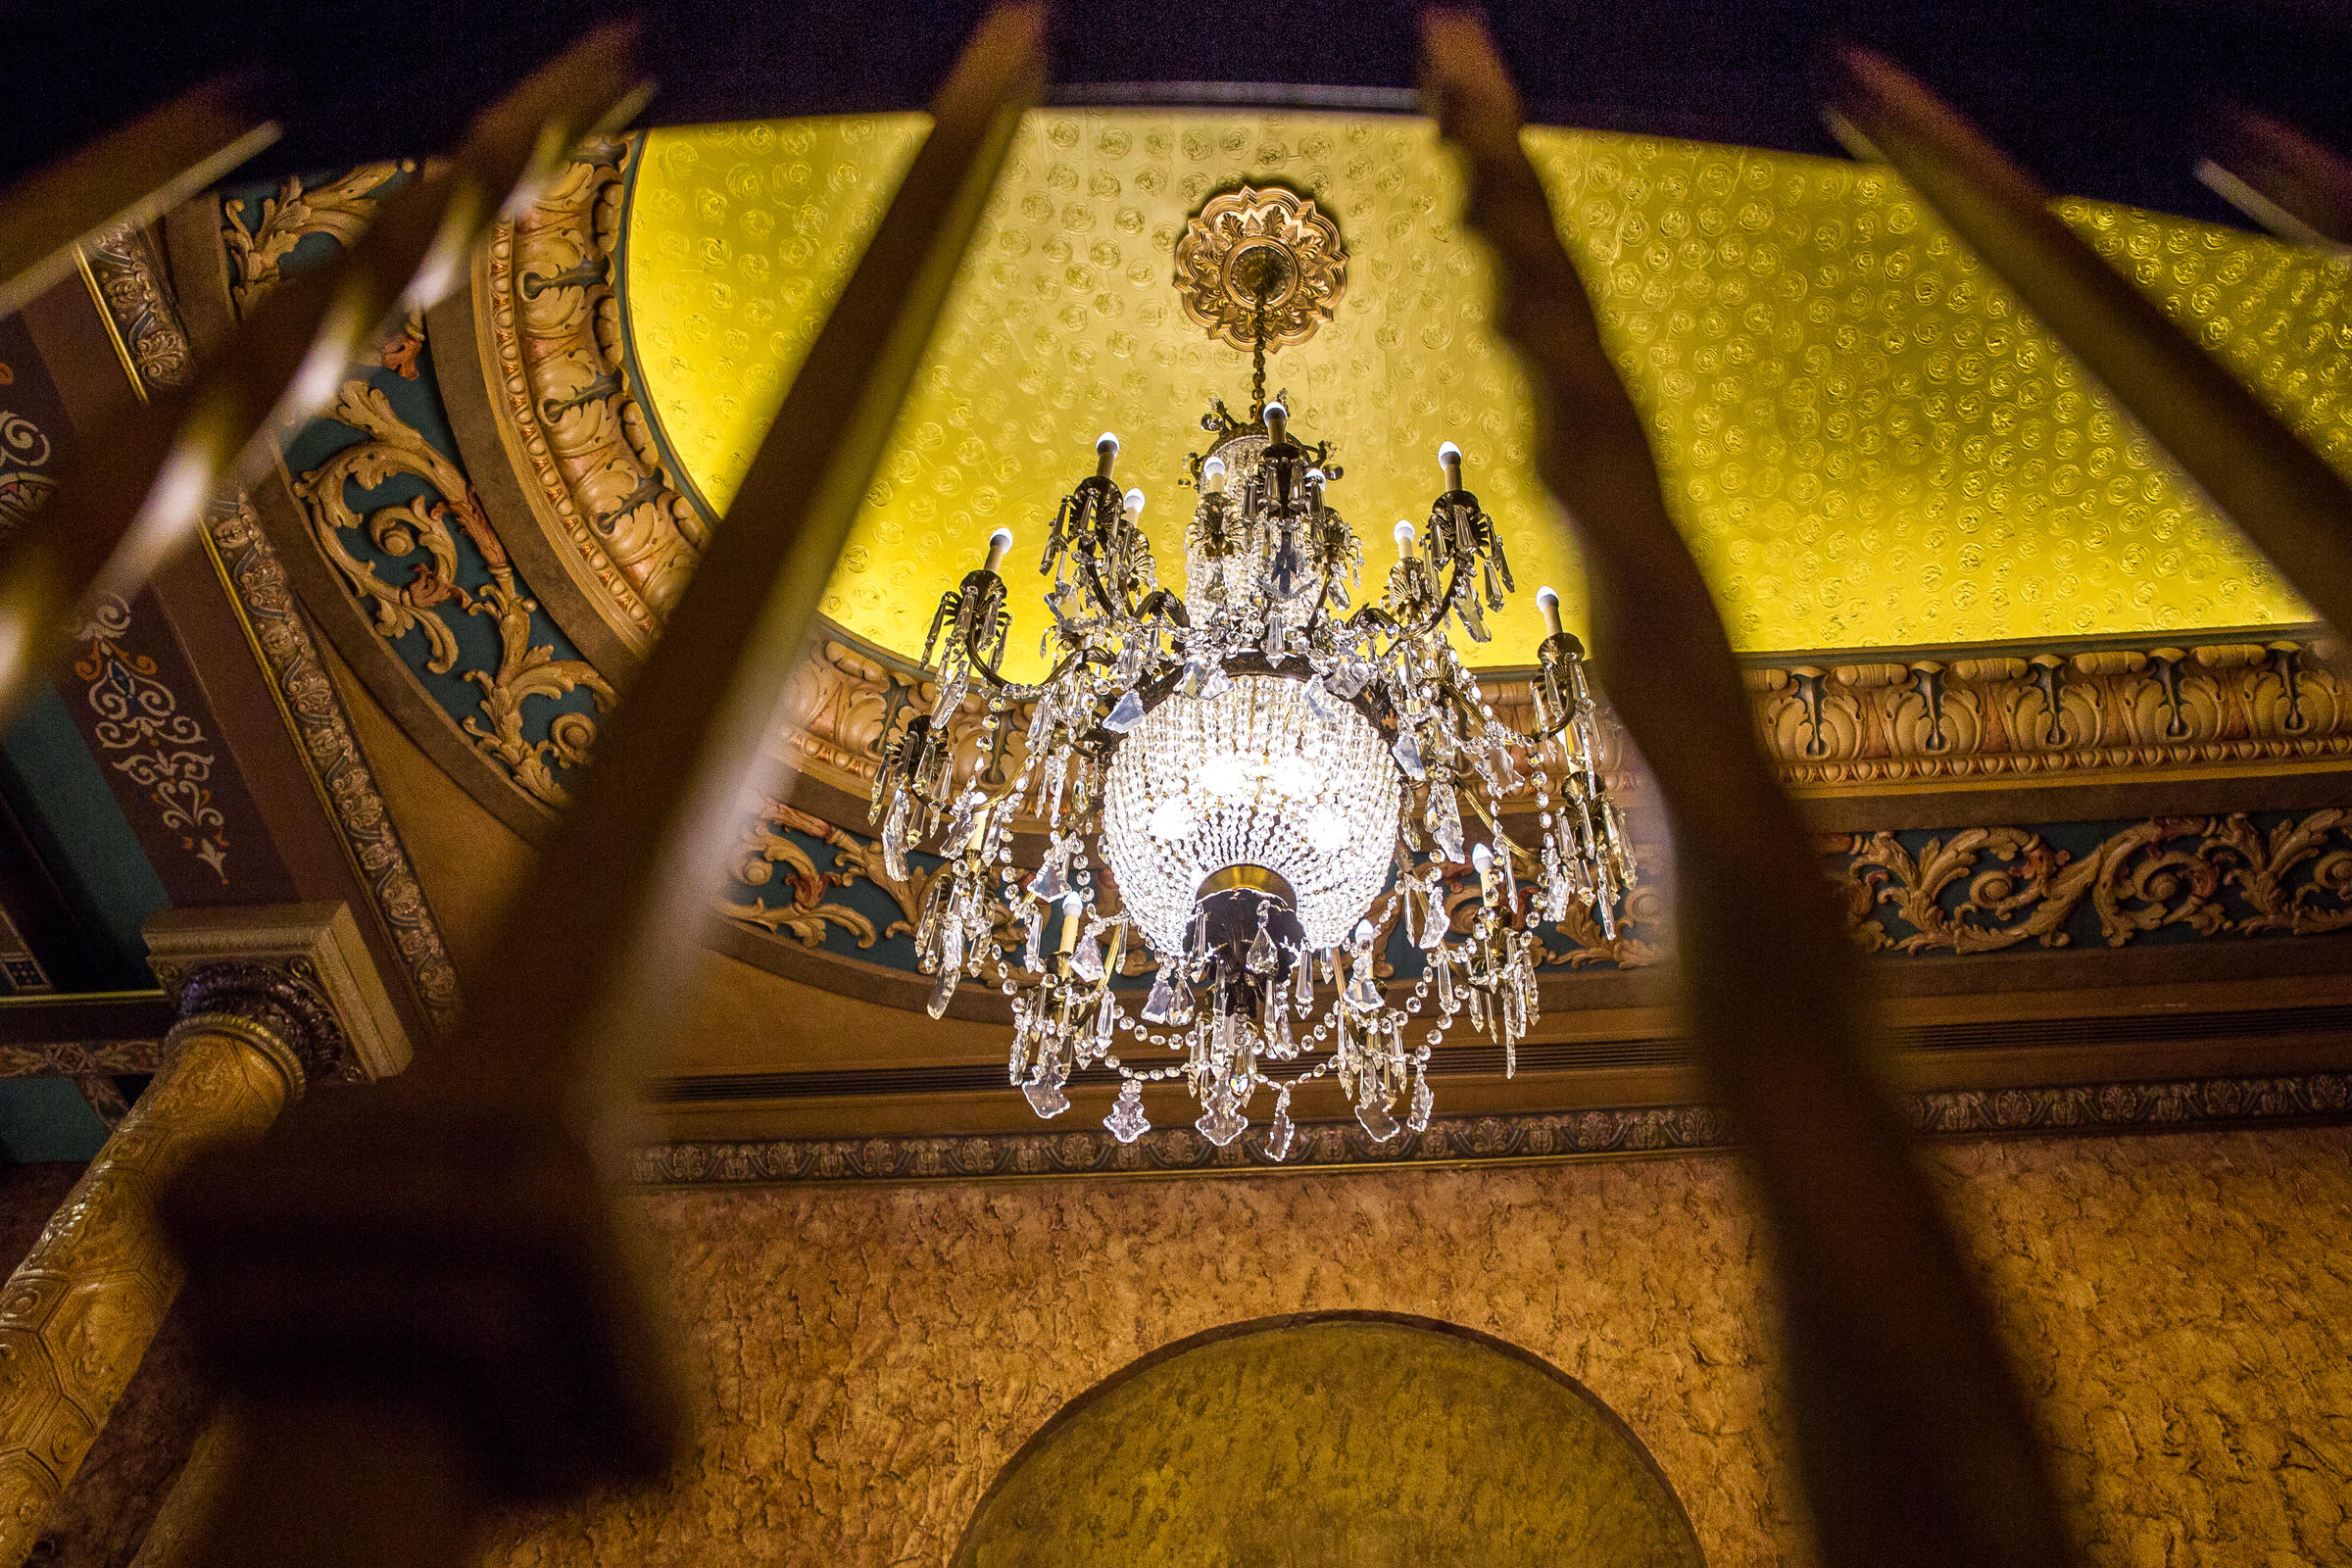 The story behind the gillioz chandelier ksmu radio the newly installed chandelier hanging in the gillioz dates back to 1881 and has become a centerpiece in the theatre aloadofball Choice Image